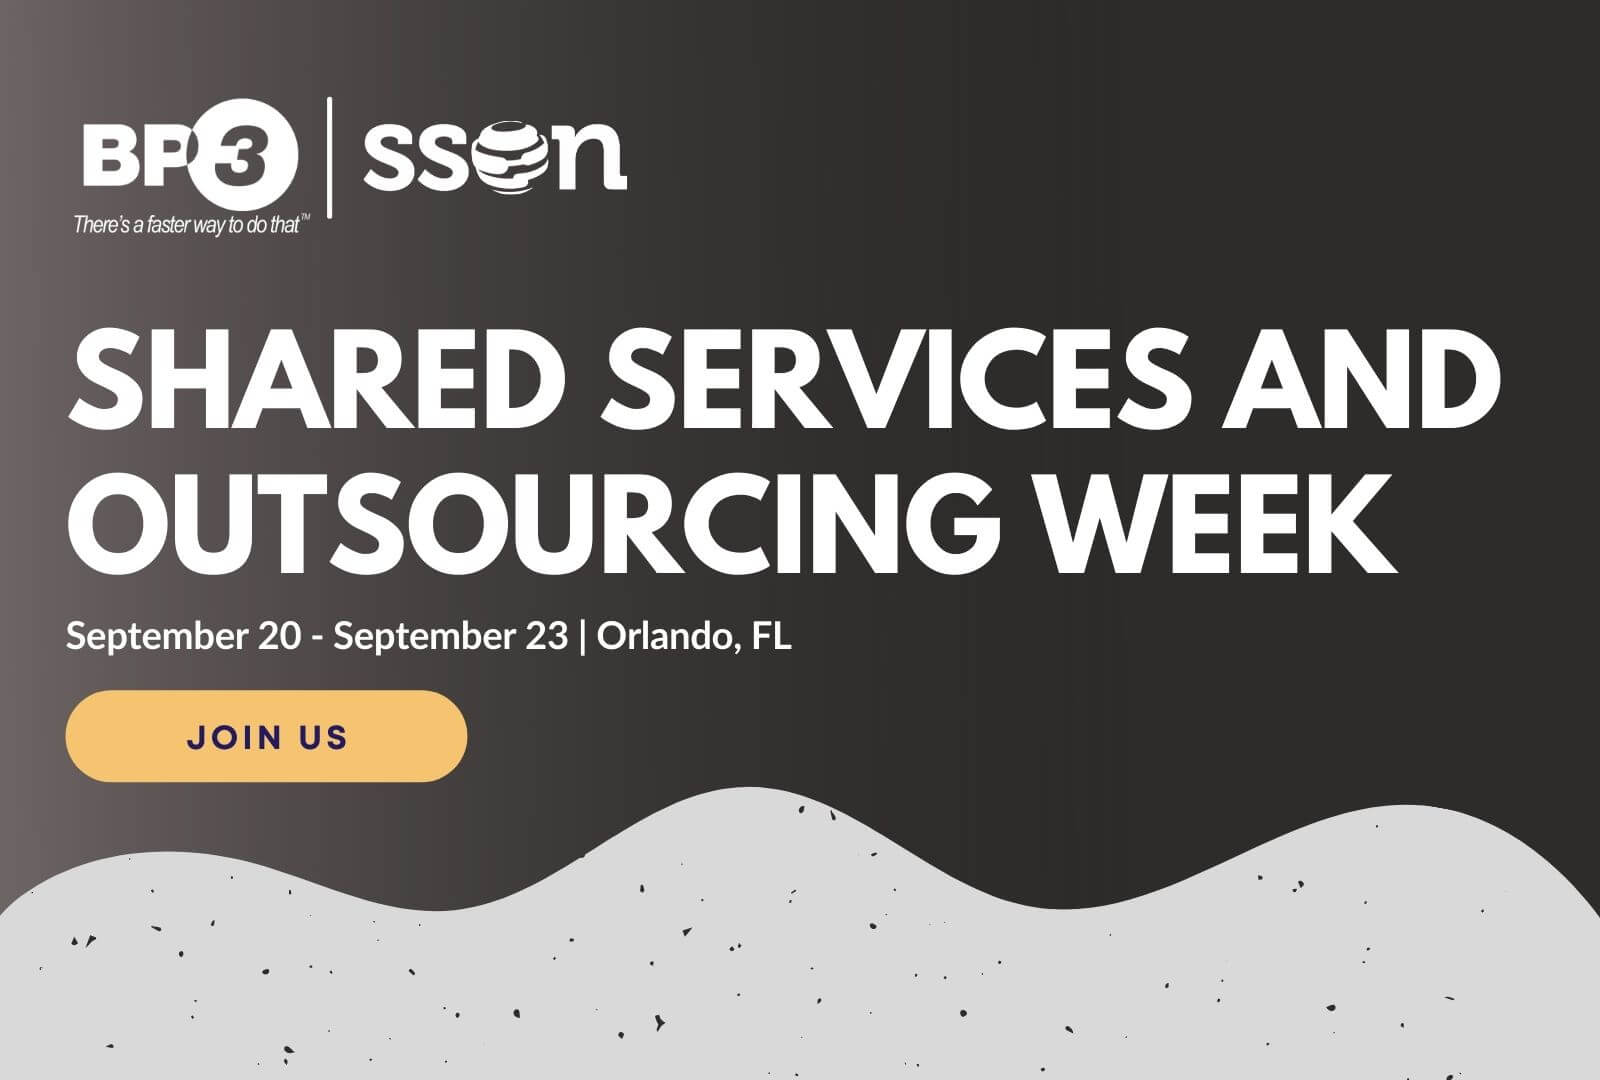 We are heading back to our first in-person event in more than a year and it is a great feeling. This week a joint group from Agilify and BP3 are heading to Orlando for Shared Services and Outsourcing Week.